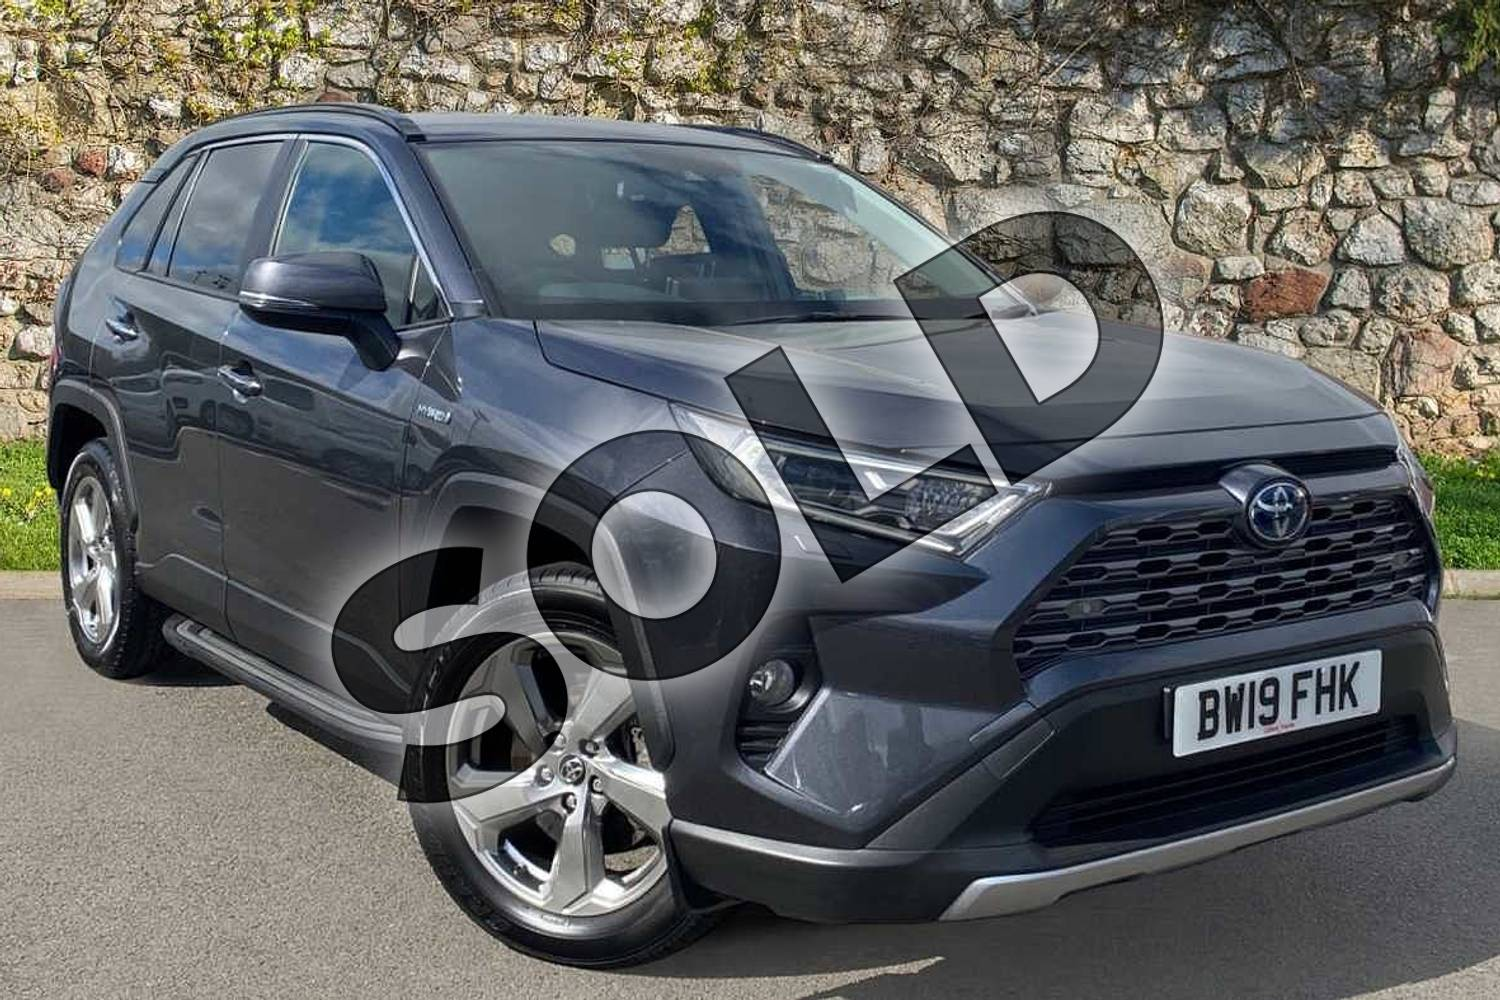 2019 Toyota RAV4 Estate 2.5 VVT-i Hybrid Excel 5dr CVT 2WD in Grey at Listers Toyota Coventry